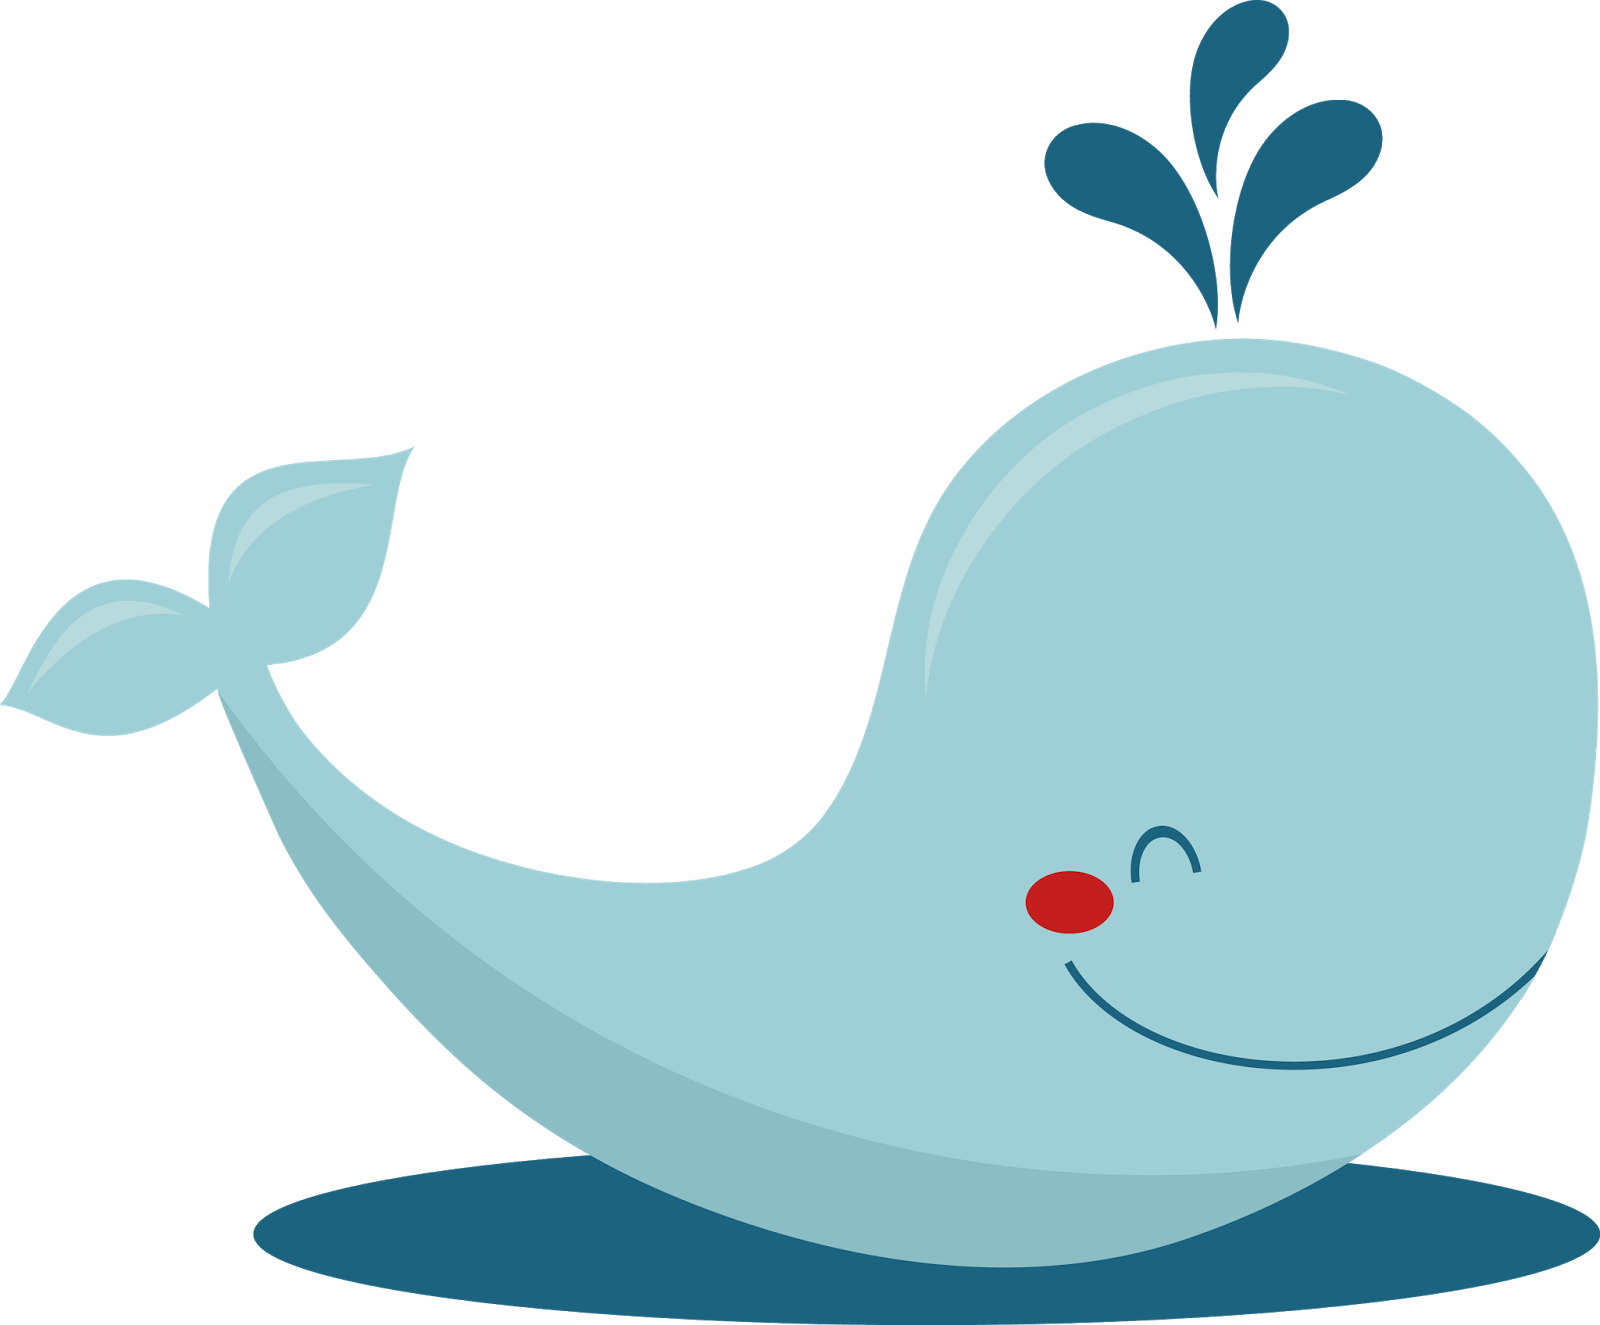 Beluga Whale clipart comic Clipart clip free Whale images